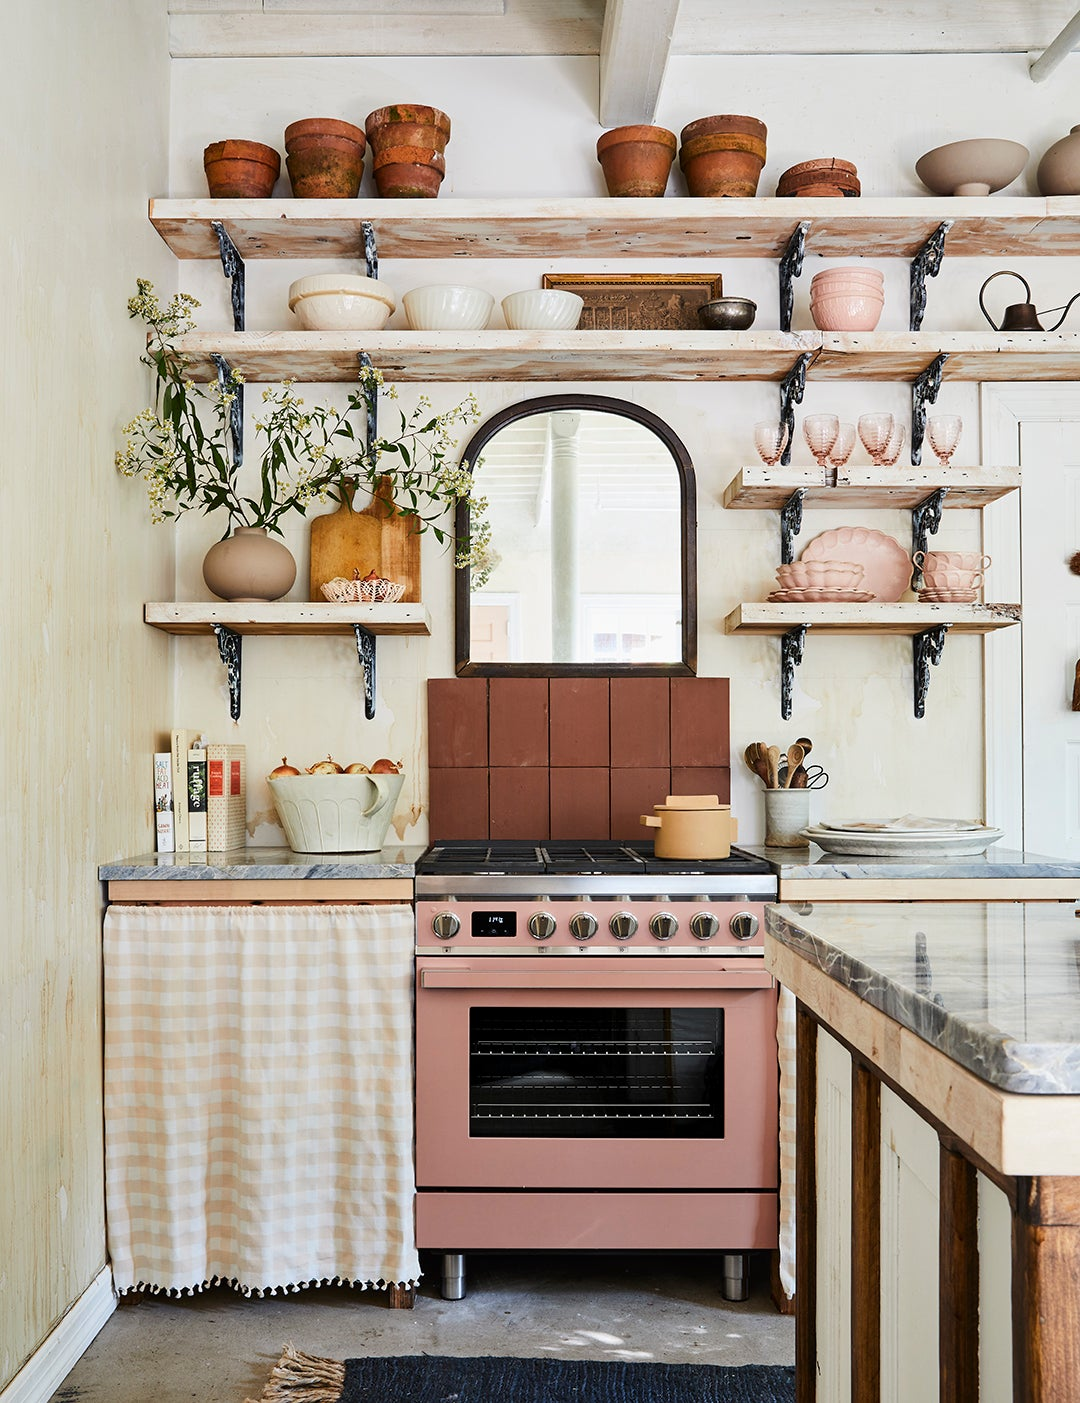 Leanne Ford home Pittsburgh - kitchen with open shelving